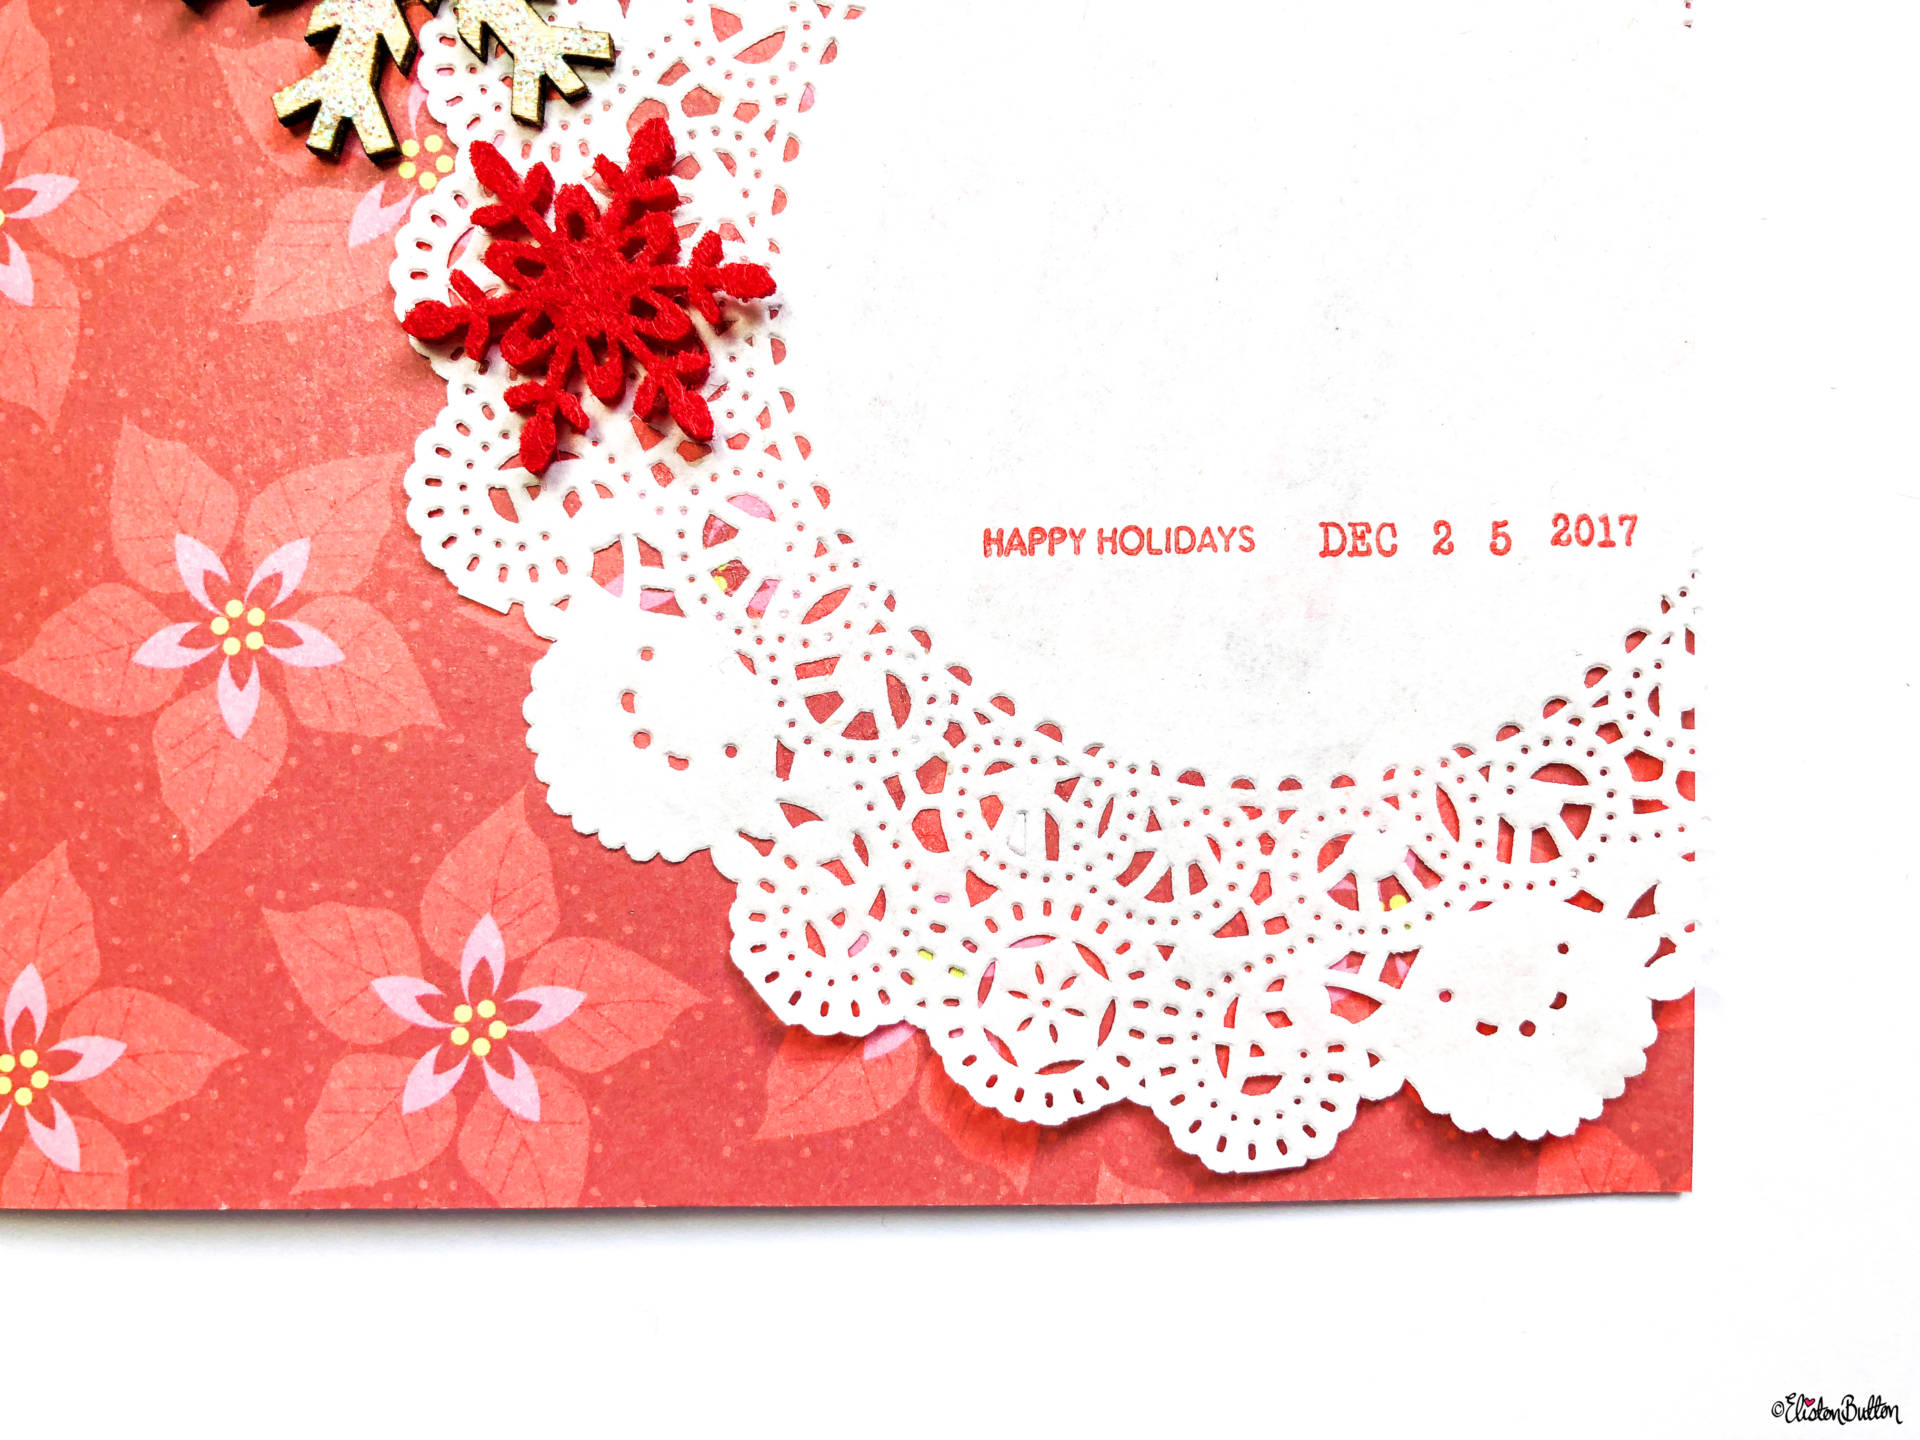 A Creative Christmas Card - Scrapbook Paper, Embellishments and Doilies Bottom Section by Eliston Button- Tutorial Tuesday - A Creative Christmas Card *Video* Tutorial at www.elistonbutton.com - Eliston Button - That Crafty Kid – Art, Design, Craft & Adventure.